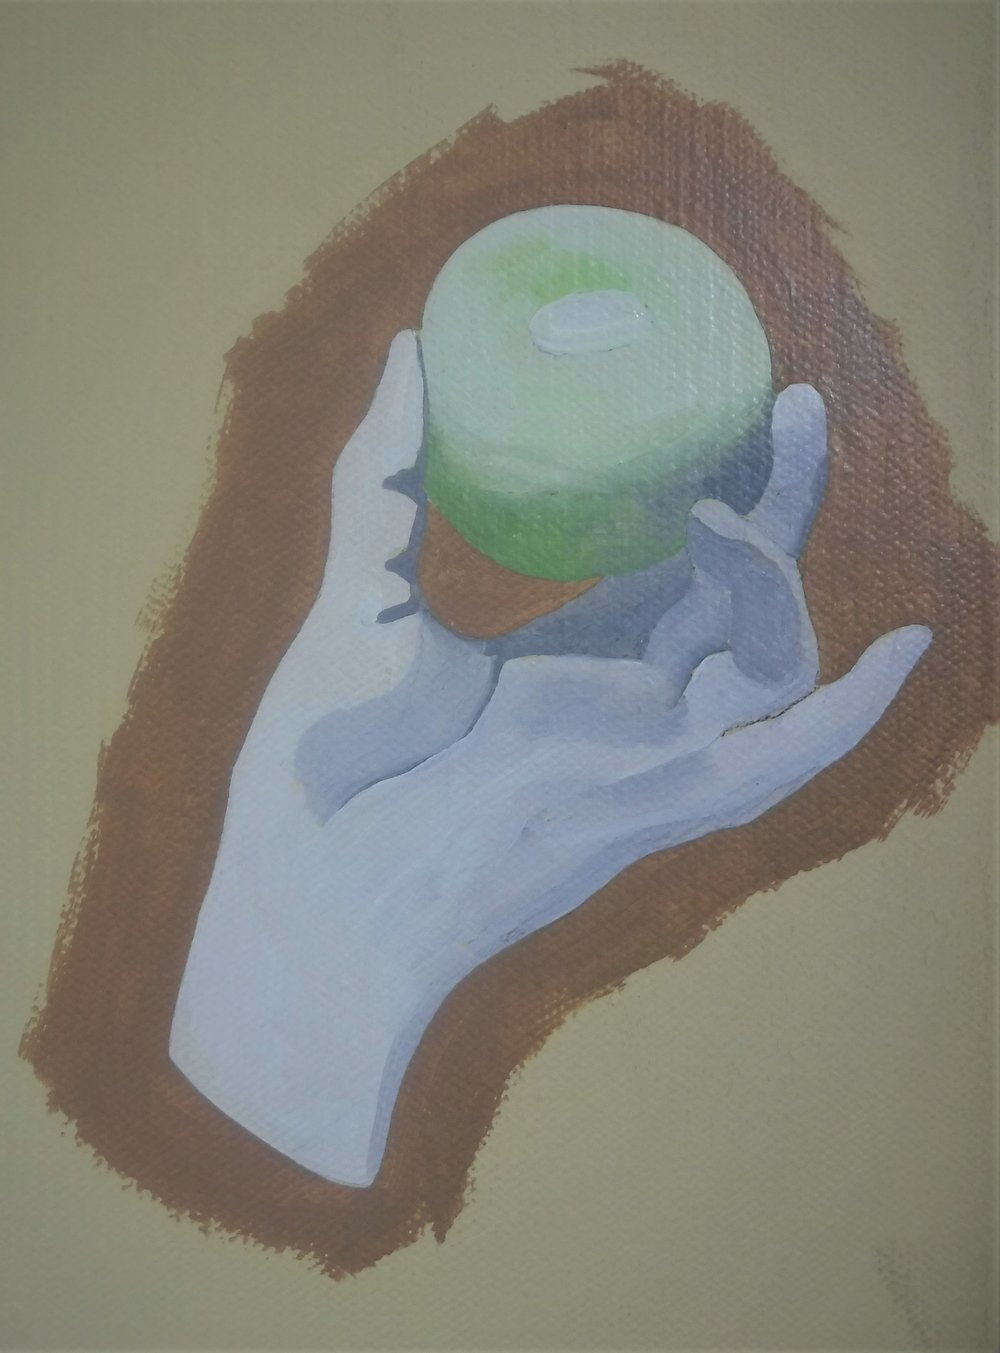 This is the first layer of paint on the left hand, holding the apple.